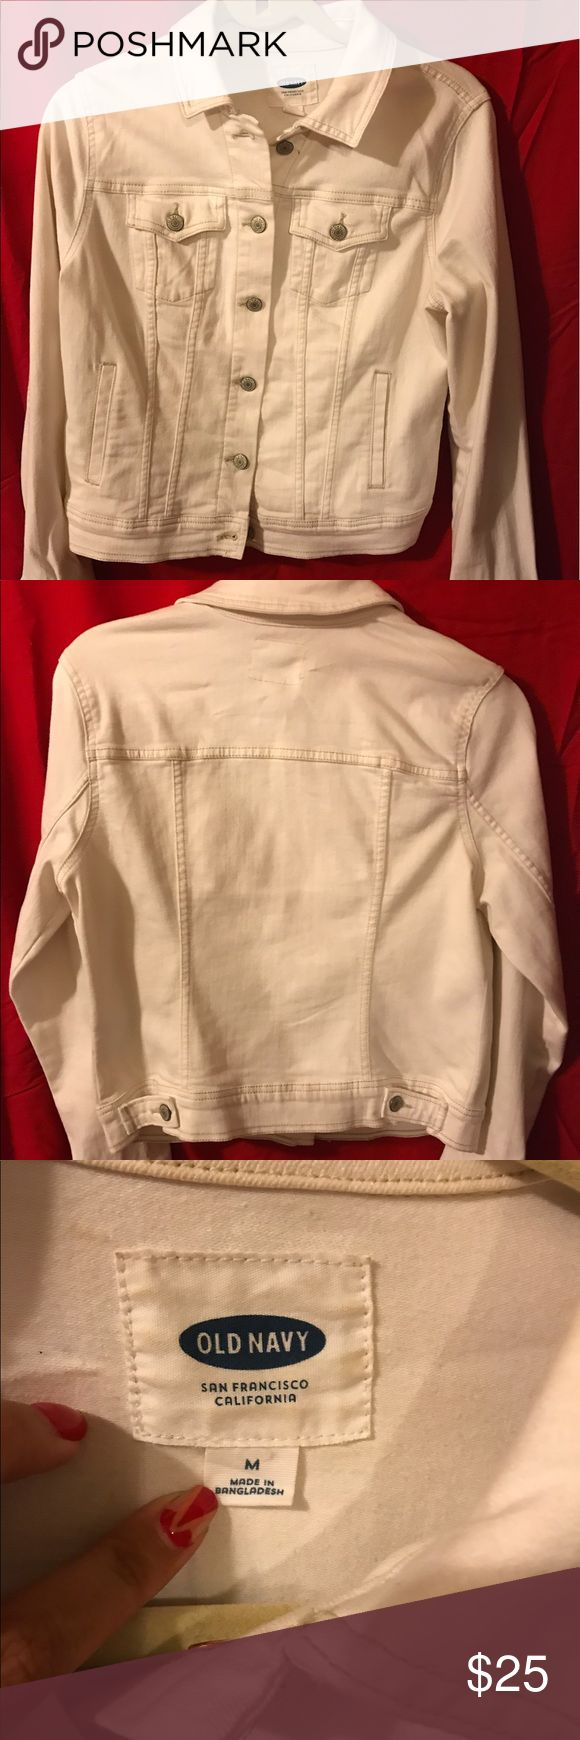 Old Navy Jean Jacket White Jean jacket only worn a few times ! No stains or rips! Women's medium and also has adjustable buttons in the back to adjust fit. Pretty much brand new! 😊 super cute to layer for a chilly night ! Please ask if more pics are needed and feel free to offer!💕 Old Navy Jackets & Coats Jean Jackets